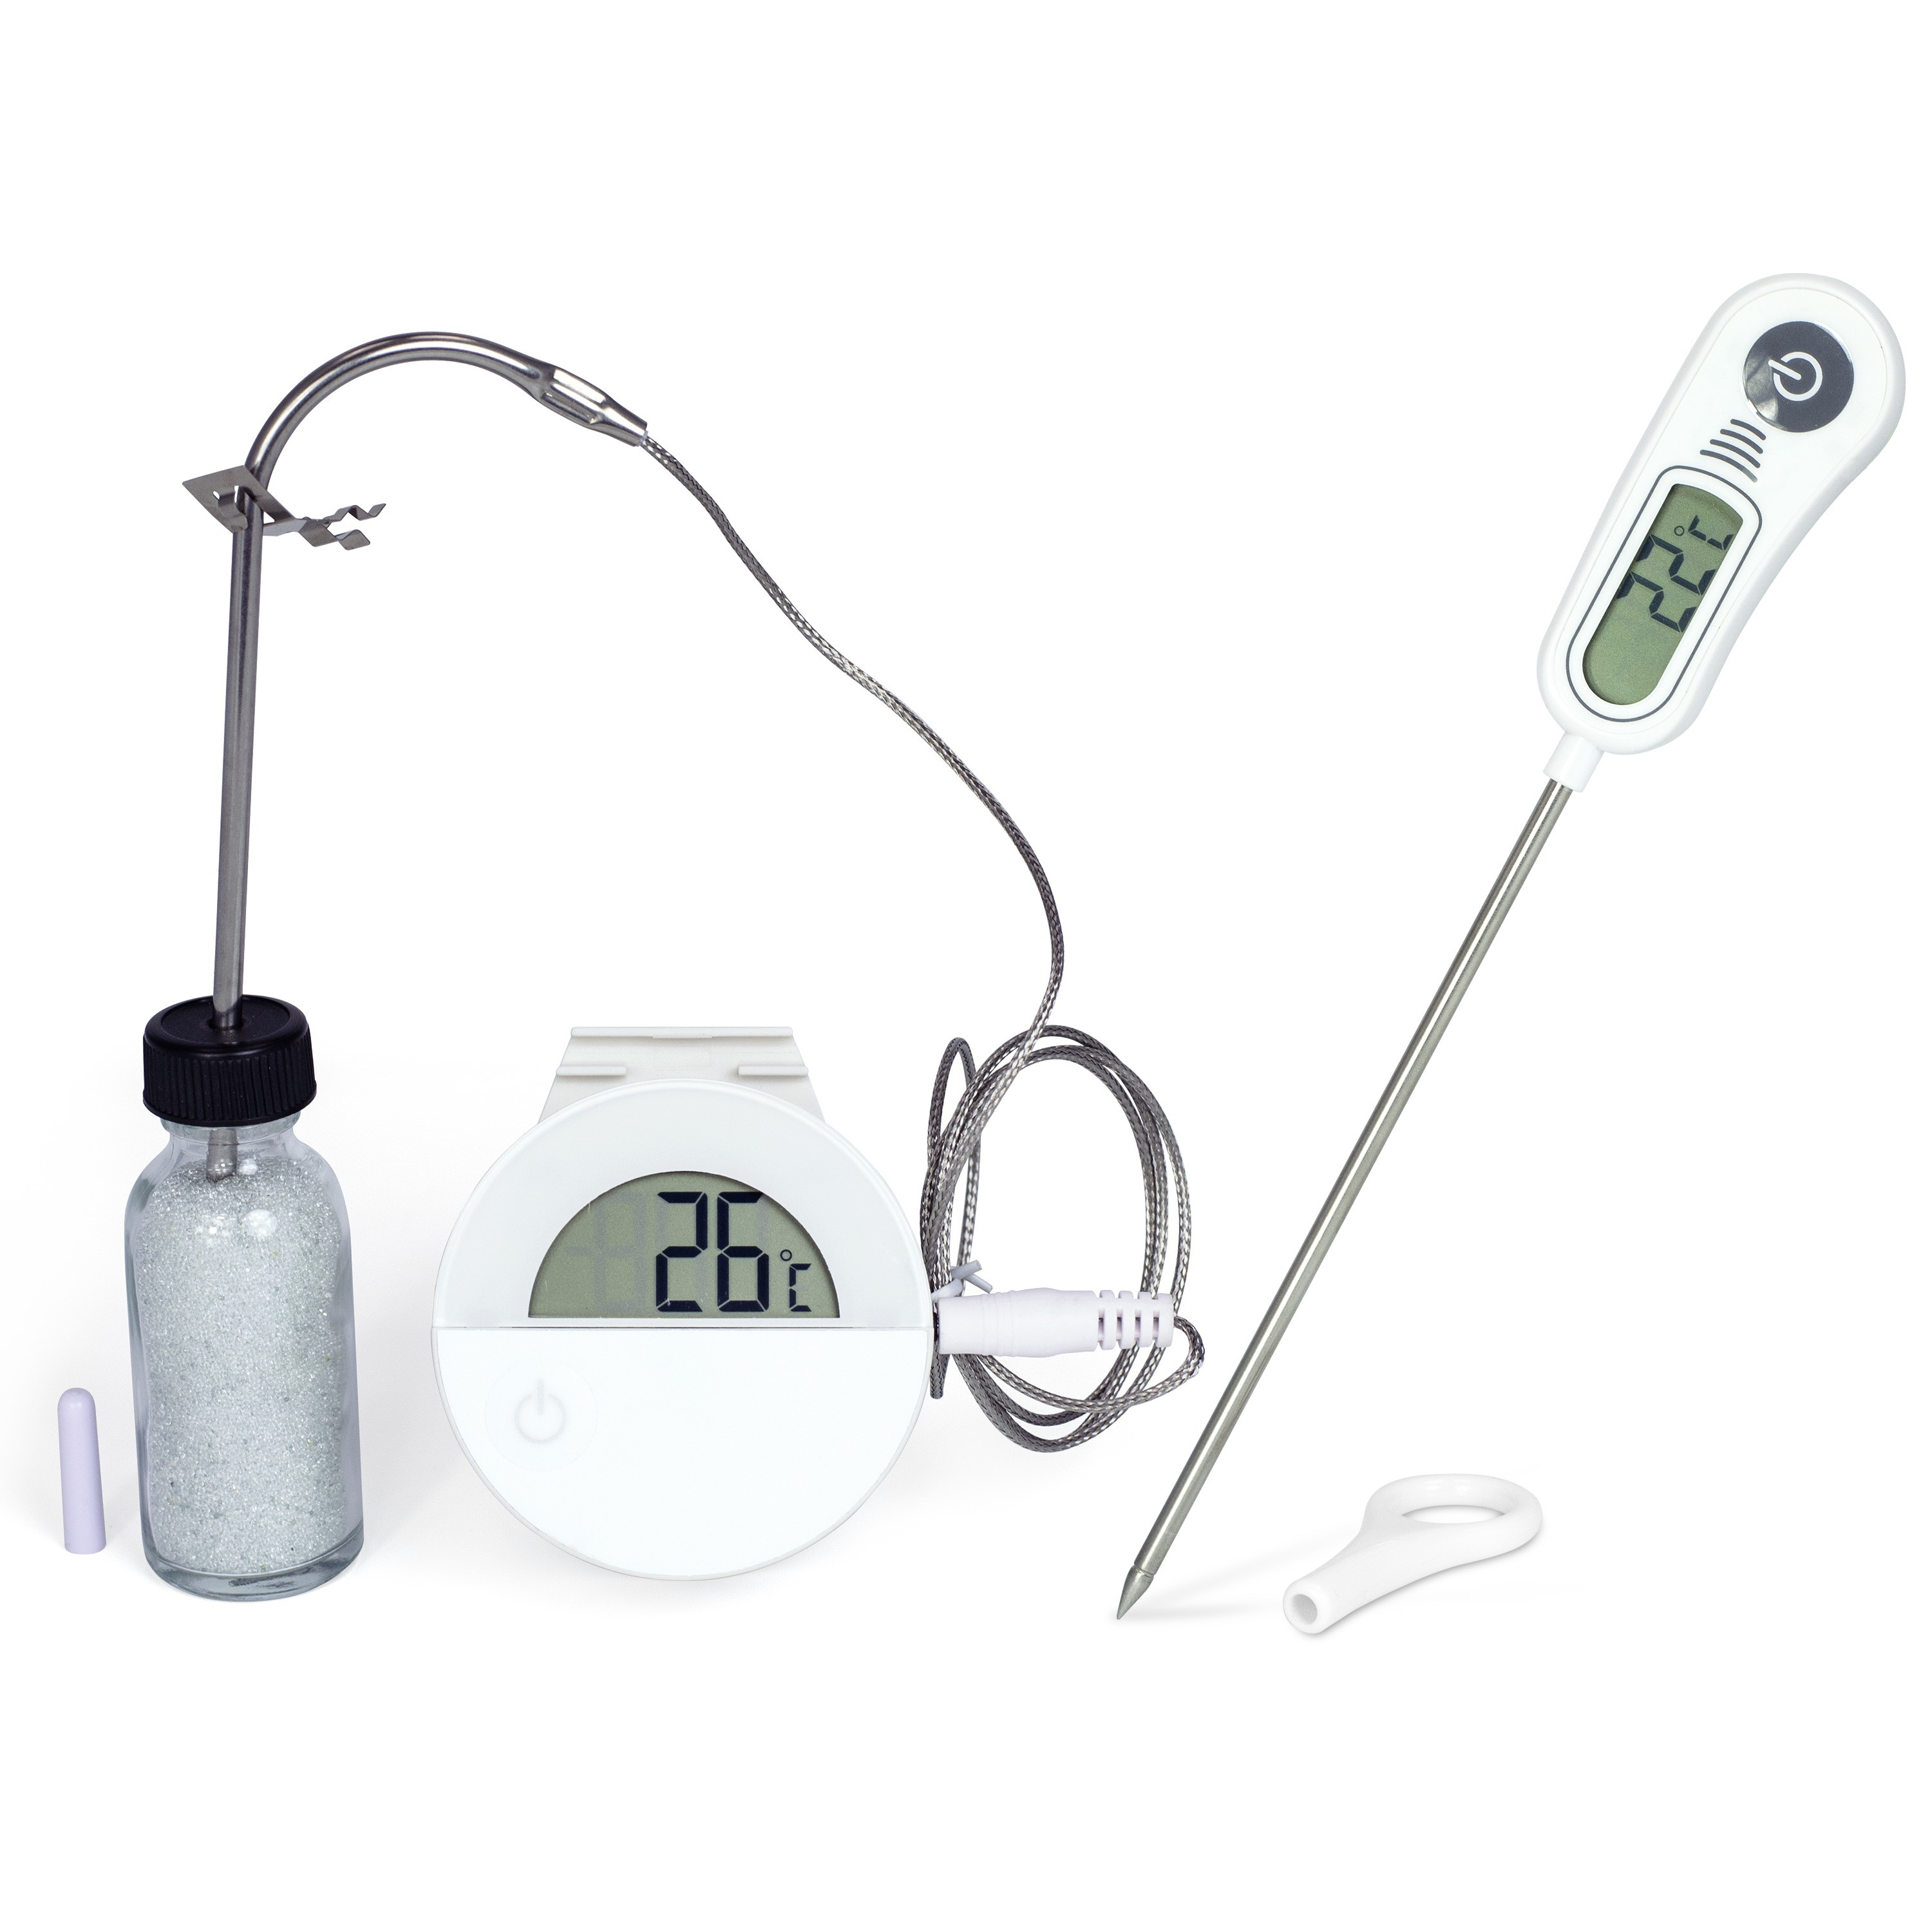 H-B Bluetooth Verification, Probe and Stem Thermometers